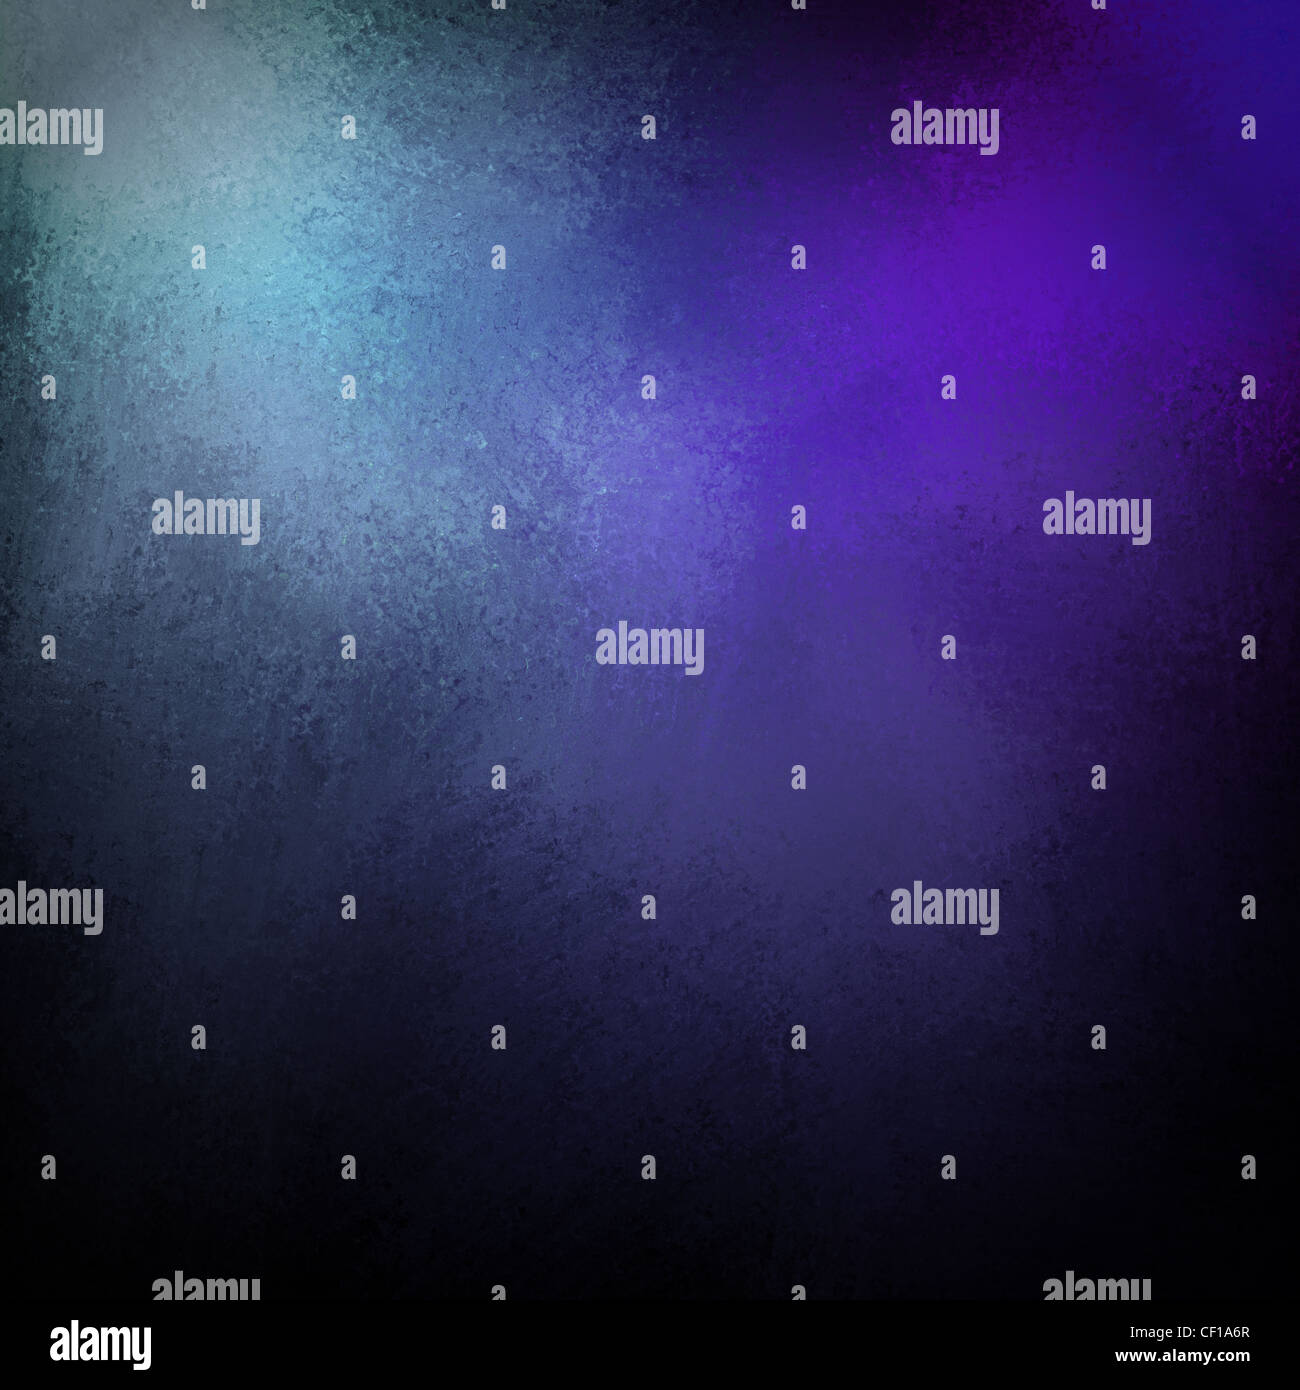 blue and purple background - Stock Image